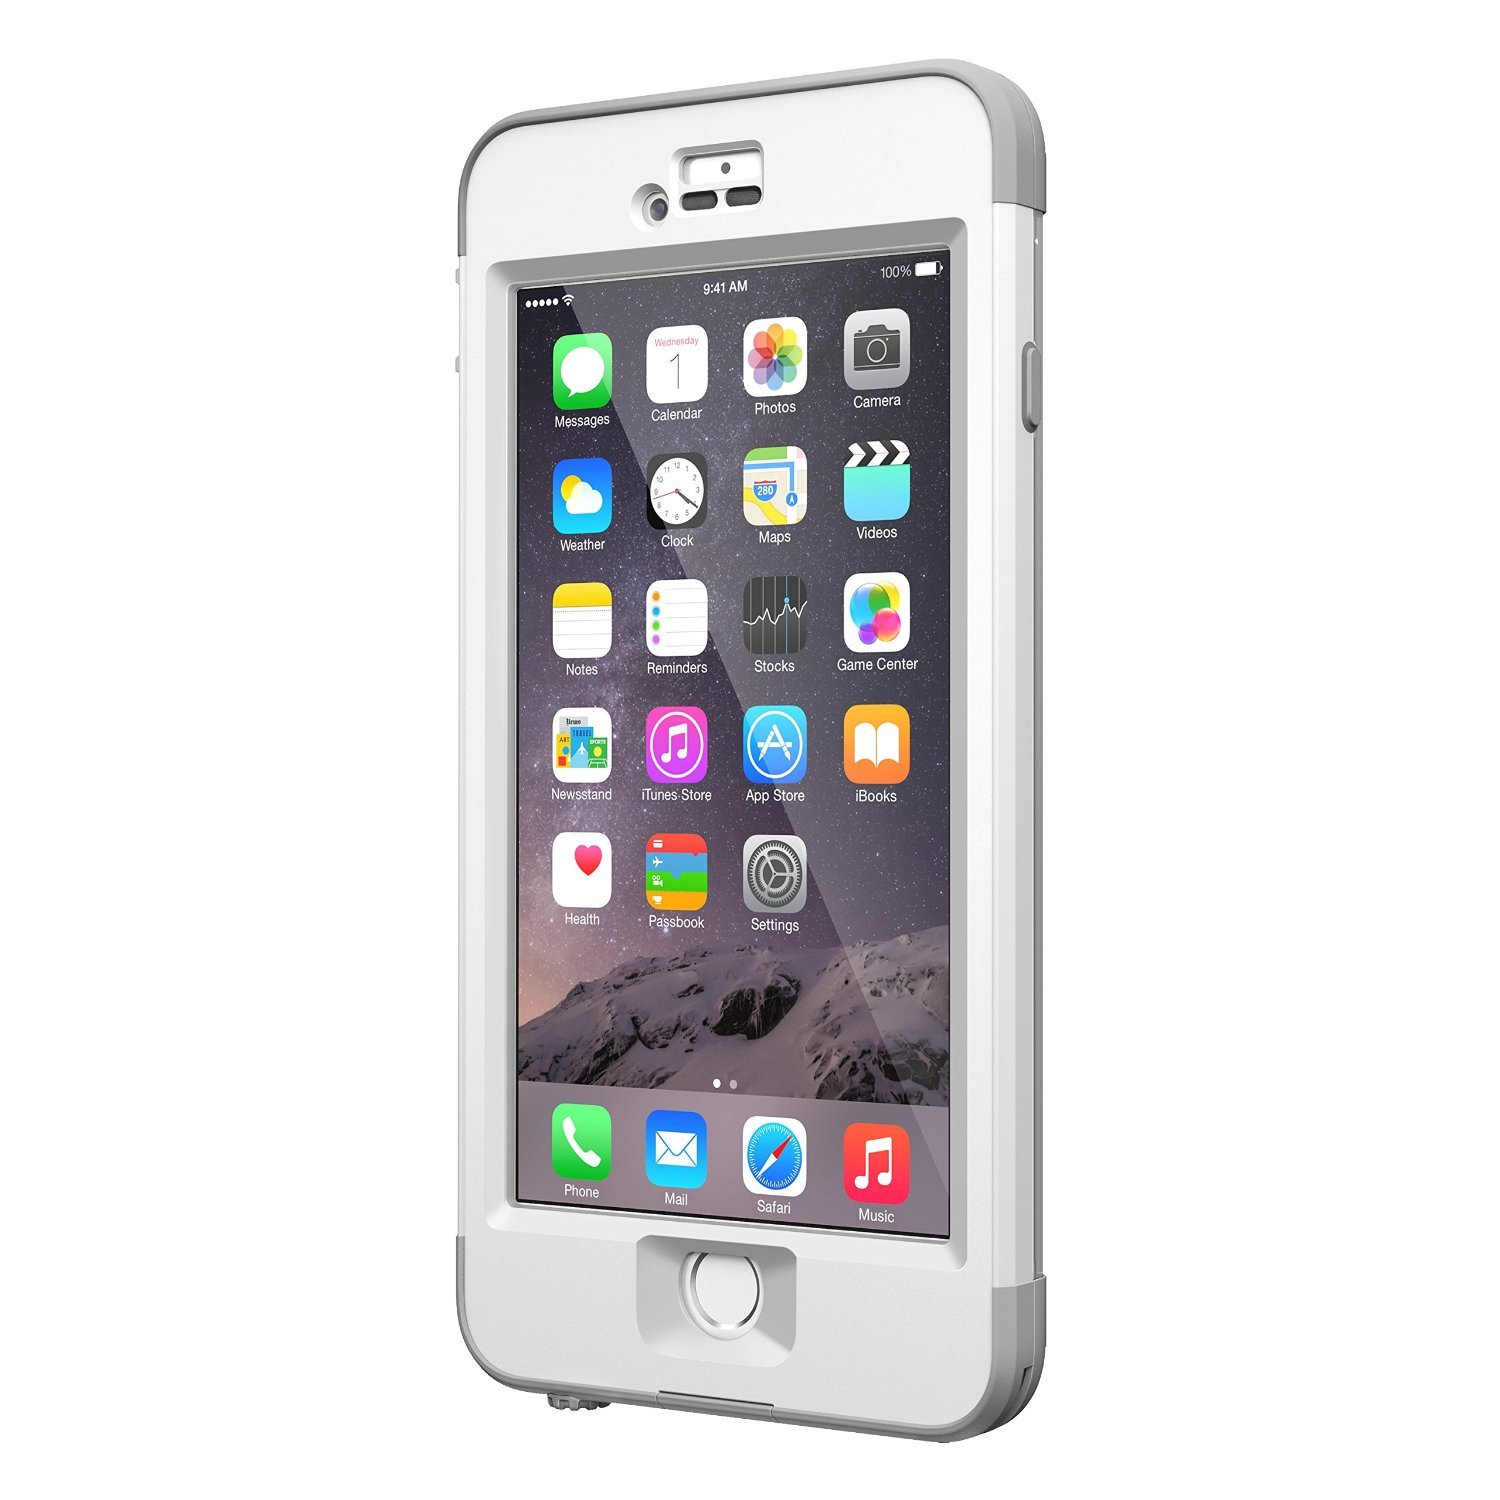 info for 2ff55 05faf Amazon.com: OtterBox LifeProof nüüd Case for iPhone 6 Plus ...